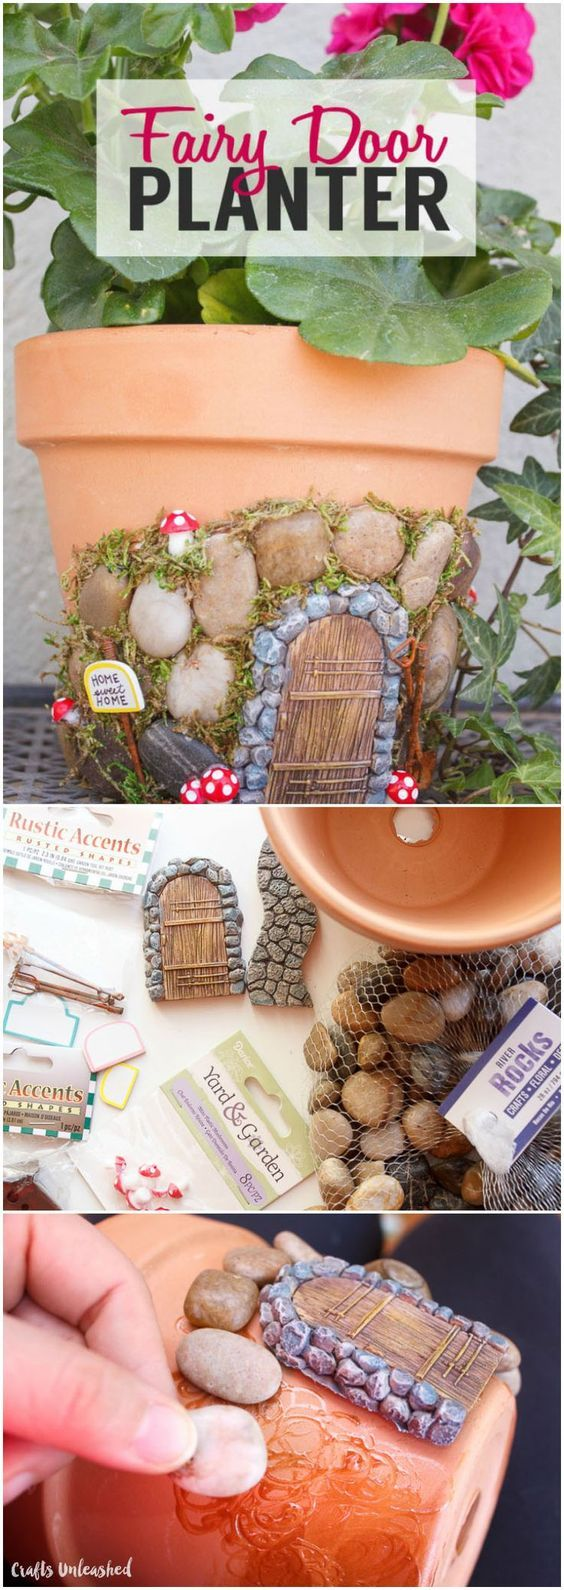 DIY Fairy House Flower Pots                                                                                                                                                     More